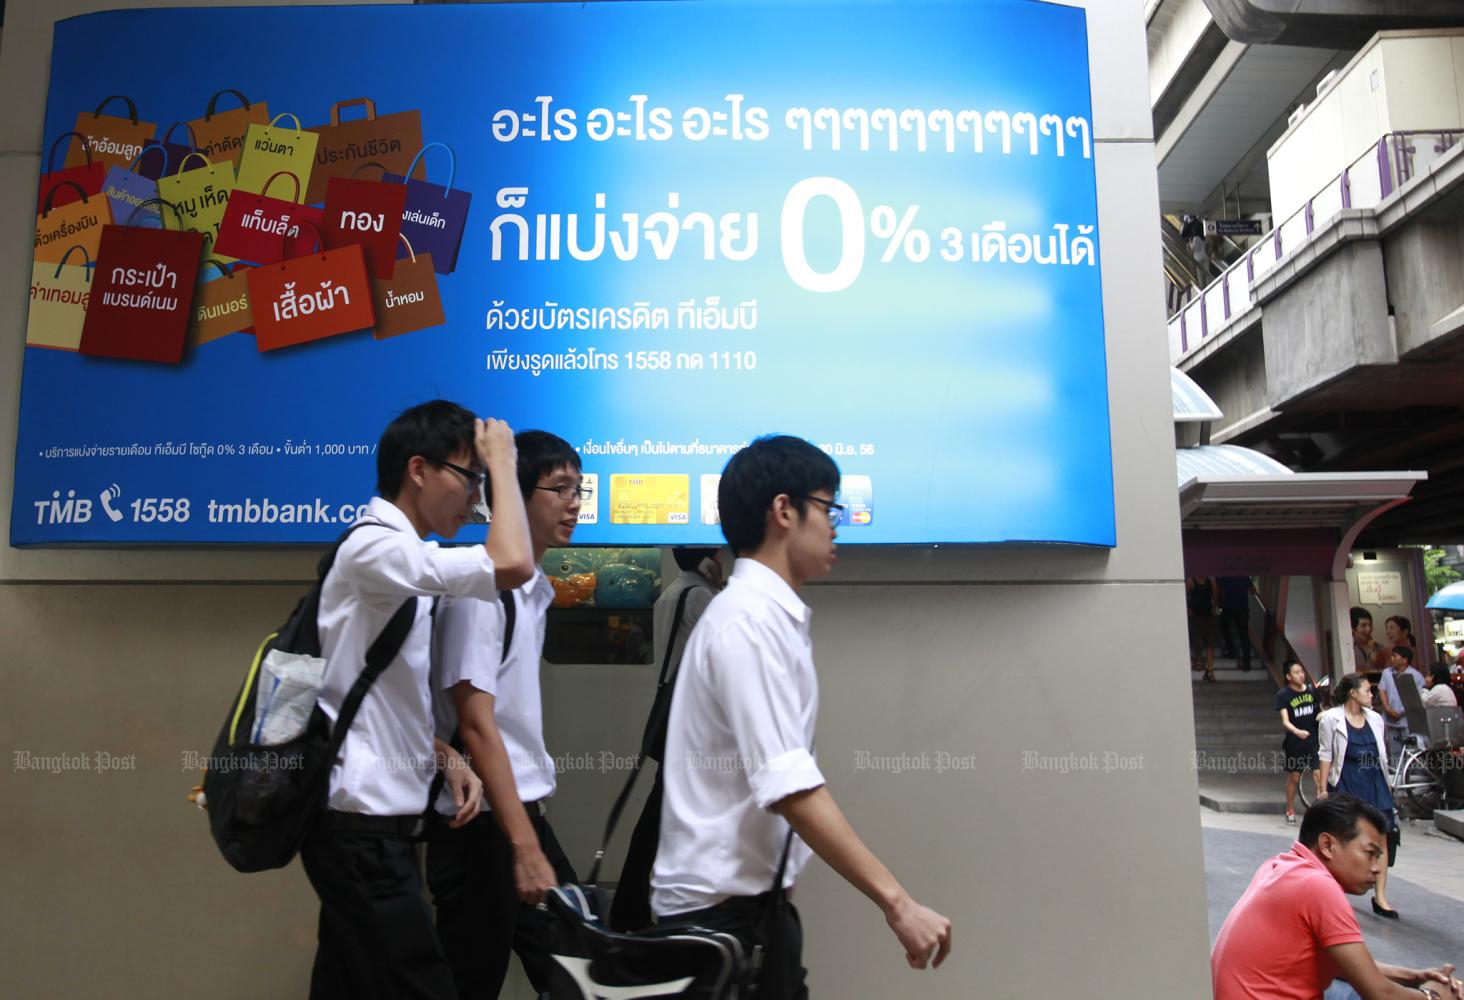 Pedestrians walk past a large sign promoting zero interest rates for instalment payments outside Siam Center in central Bangkok. (Photo by Thanarak Khunton)